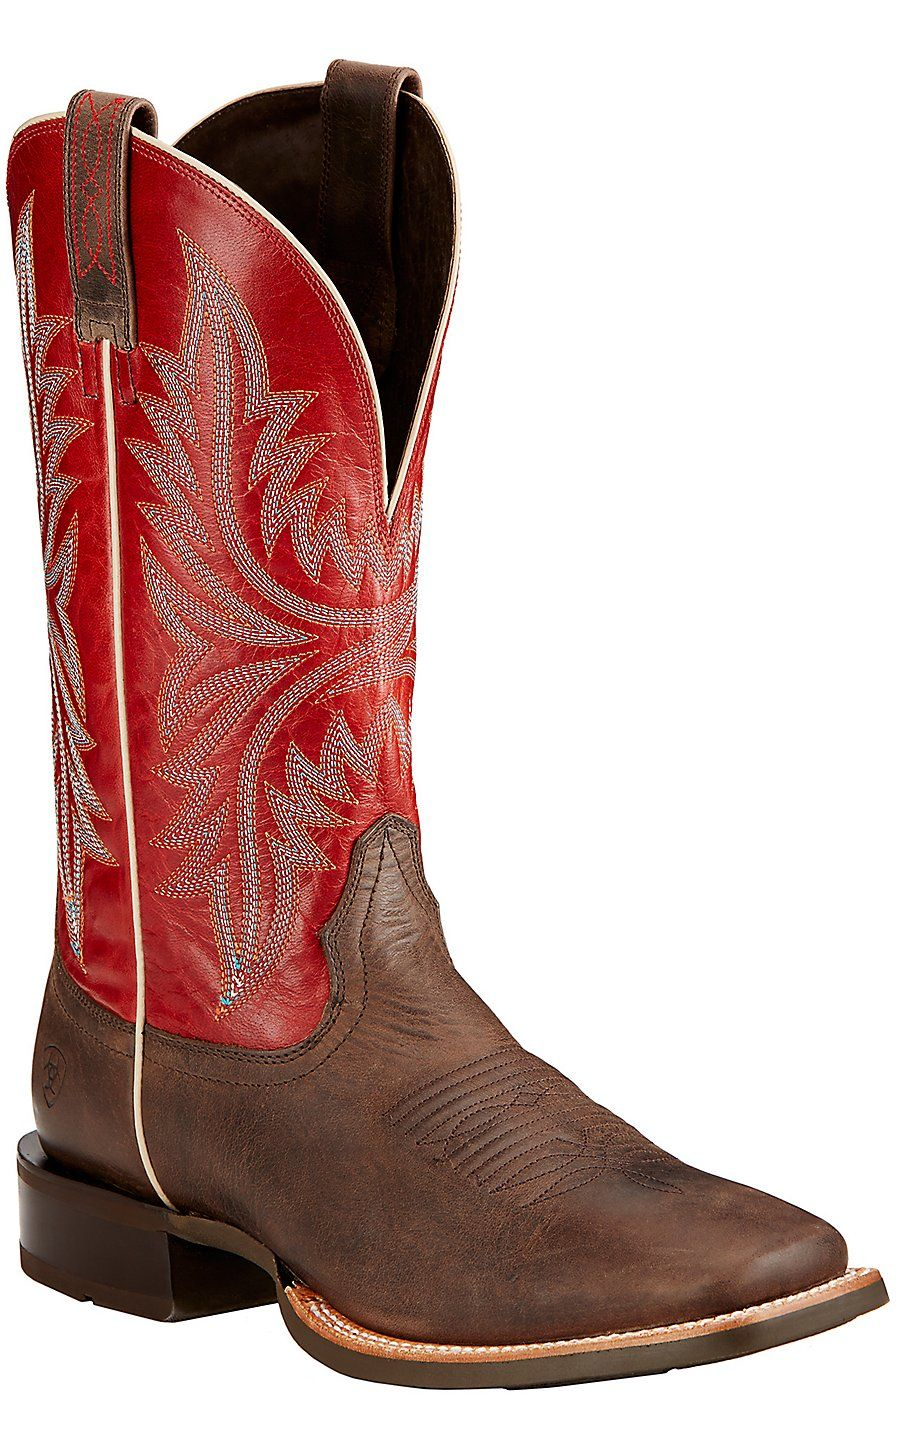 Ariat Cowhand Men's Murky Brown with Red Top Double Welt Square ...